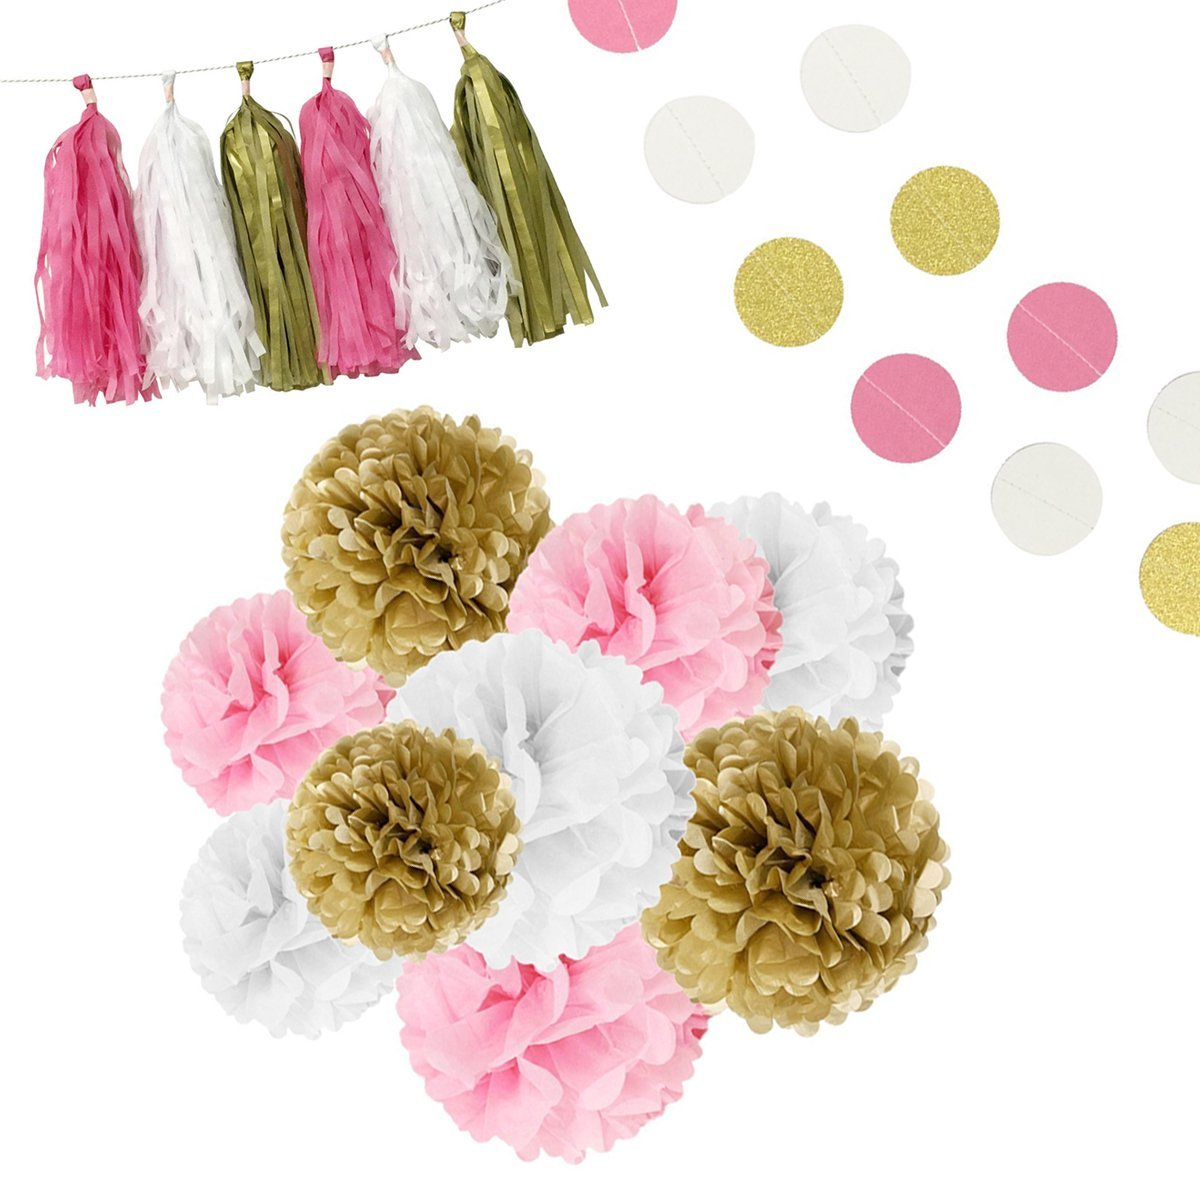 ALLYDREW 35pcs Pink, Gold & White Tissue Paper Pom Poms, Garlands & Tassels Party Pack for Baby Showers Birthdays Party Decorations